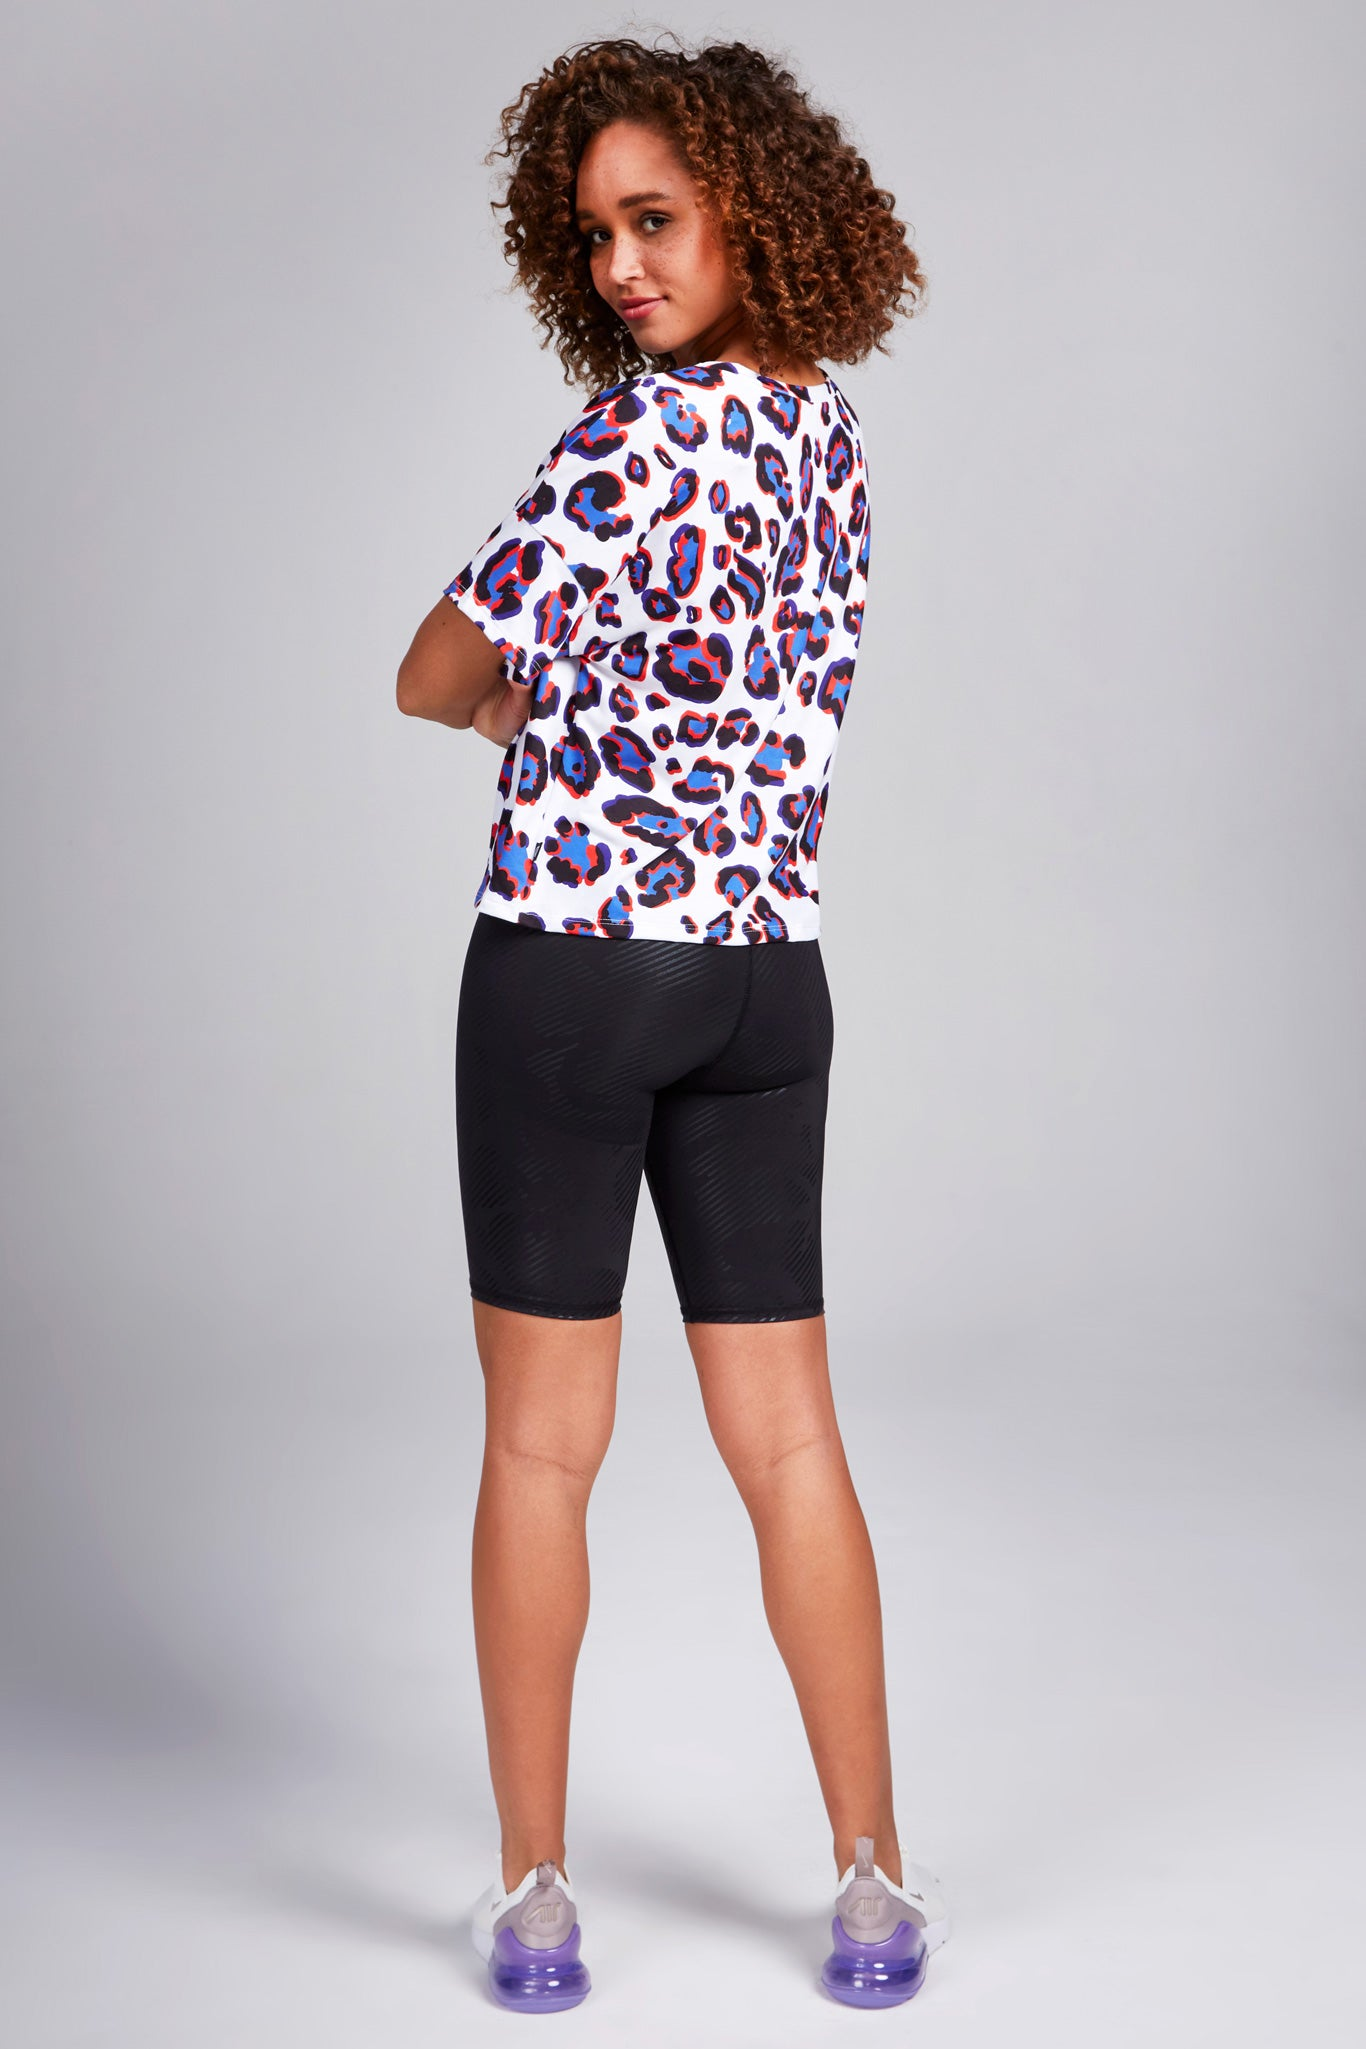 Solid black biker shorts, overlaid with subtle black foil patterns of camo.